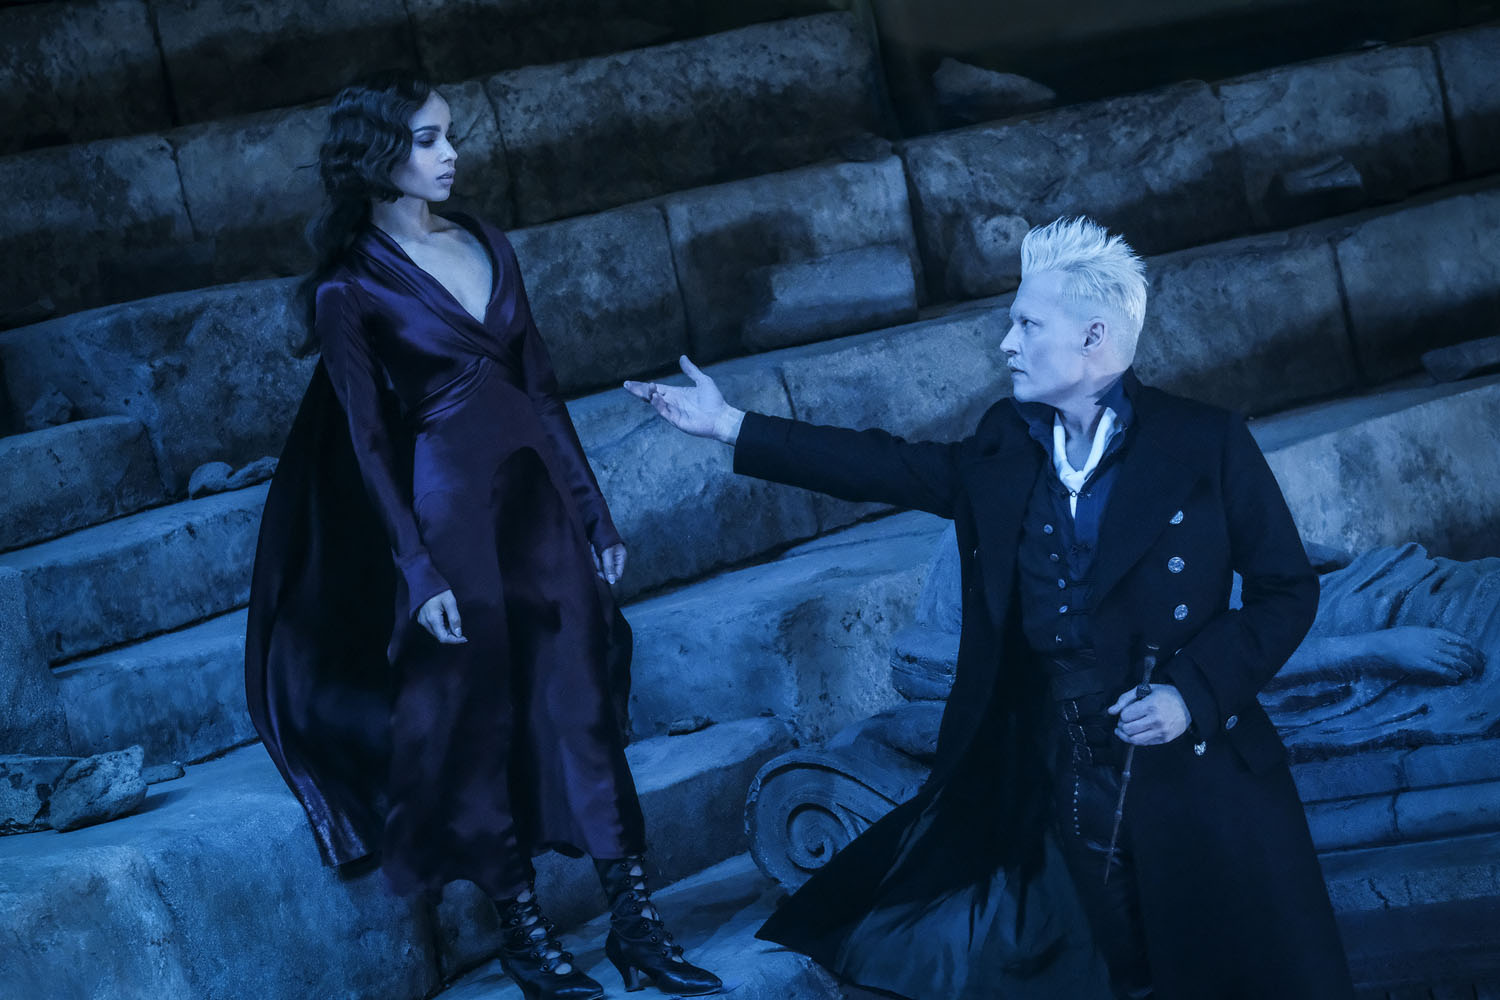 """Fantastic Beasts: The Crimes of Grindelwald"": Leta Lestrange (Zoë Kravitz) and Gellert Grindelwald (Johnny Depp)"